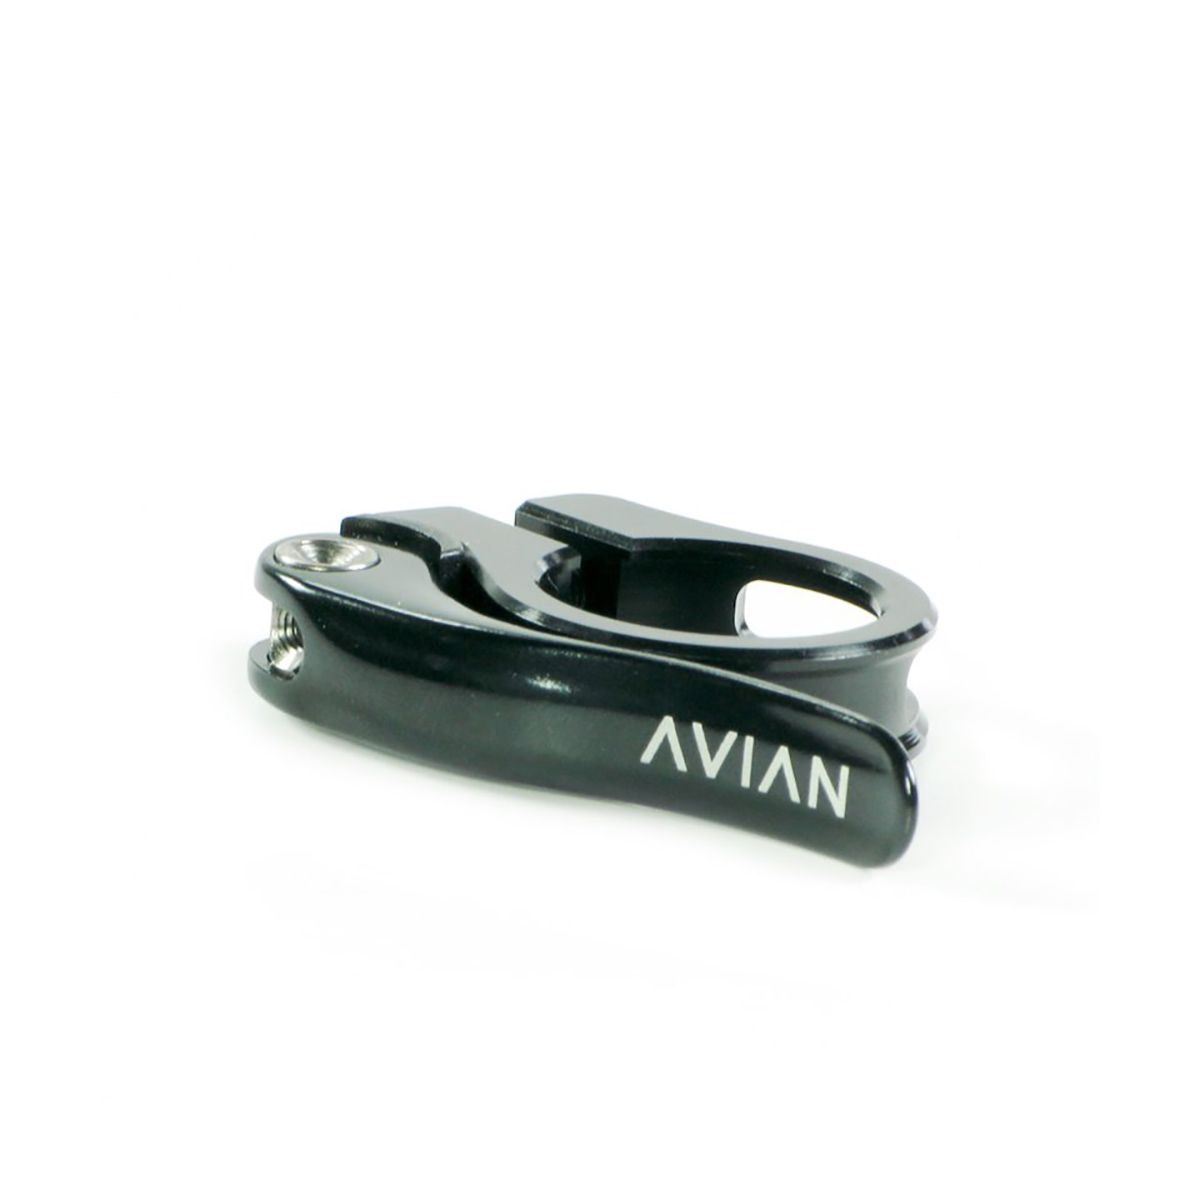 AVIAN AVIARA QUICK RELEASE SEAT CLAMP 31.8MM